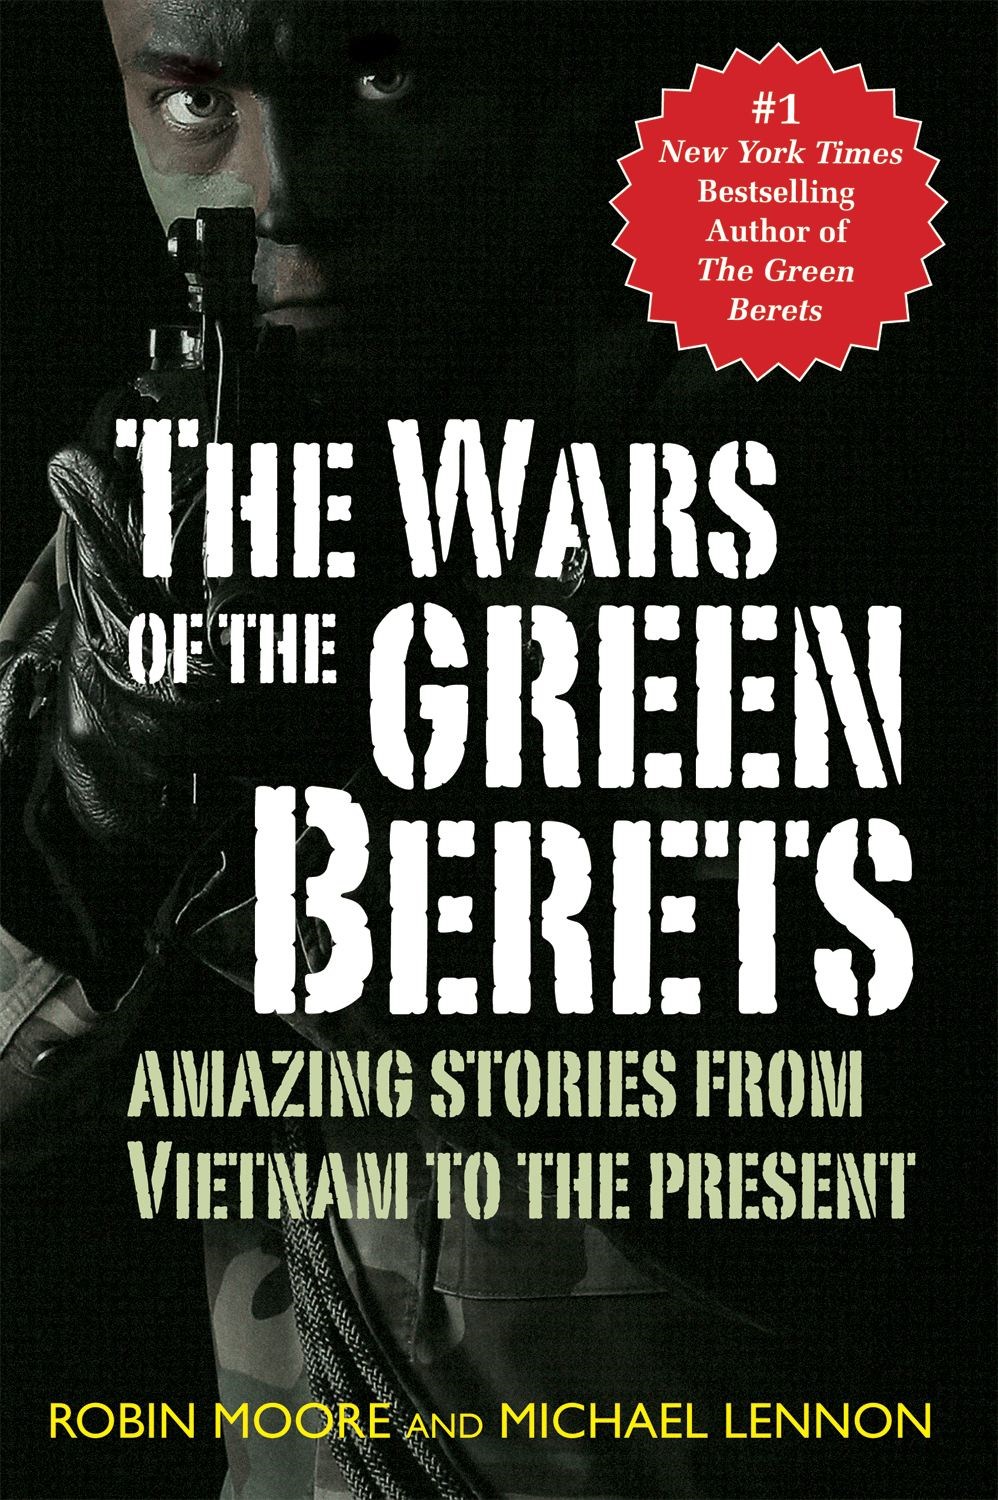 The Wars Of The Green Berets: Amazing Stories from Vietnam to the Present